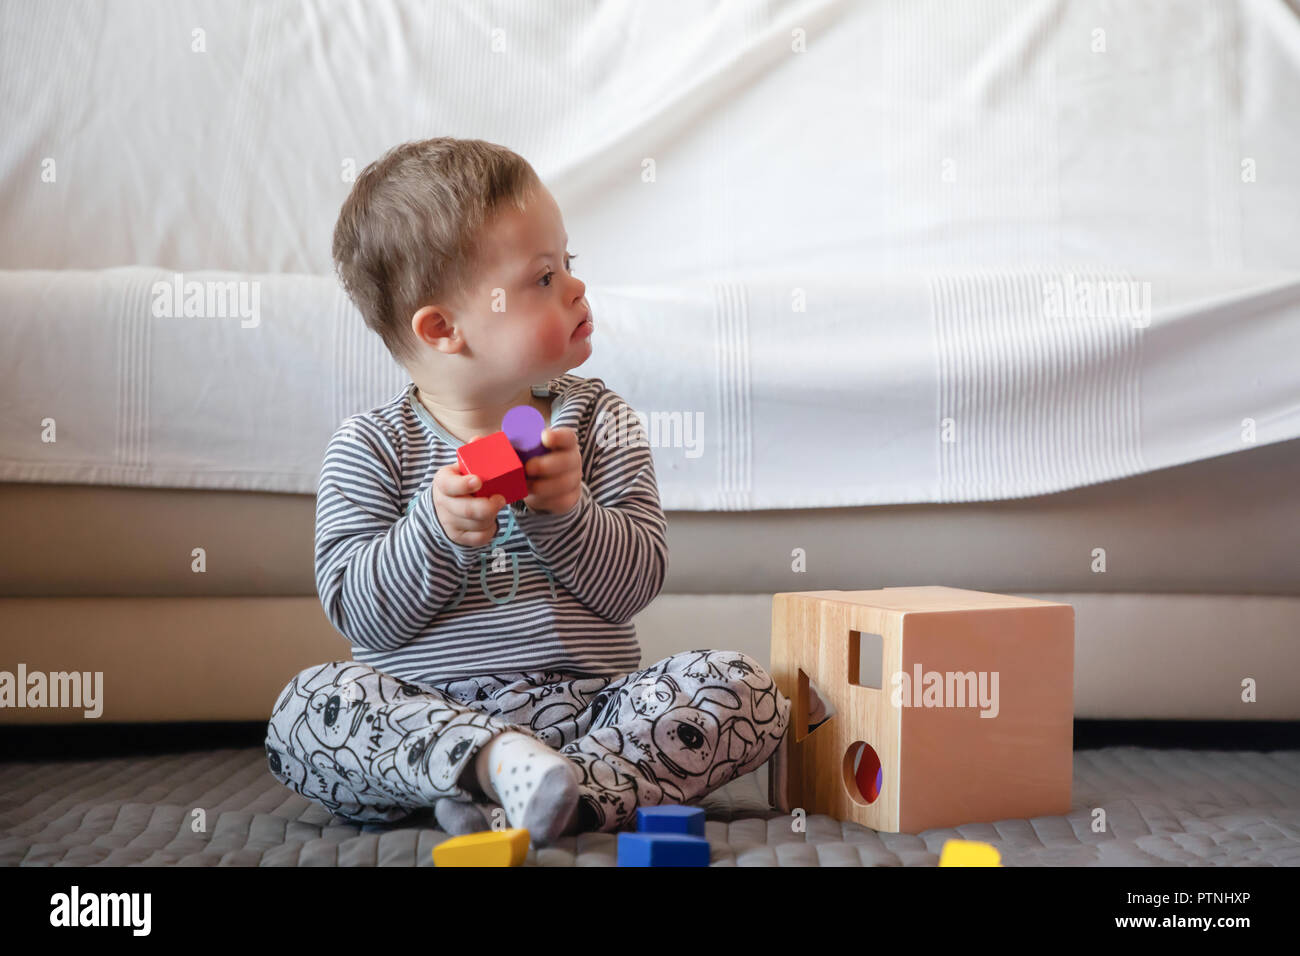 Portrait of cute boy with Down syndrome playing in home Stock Photo